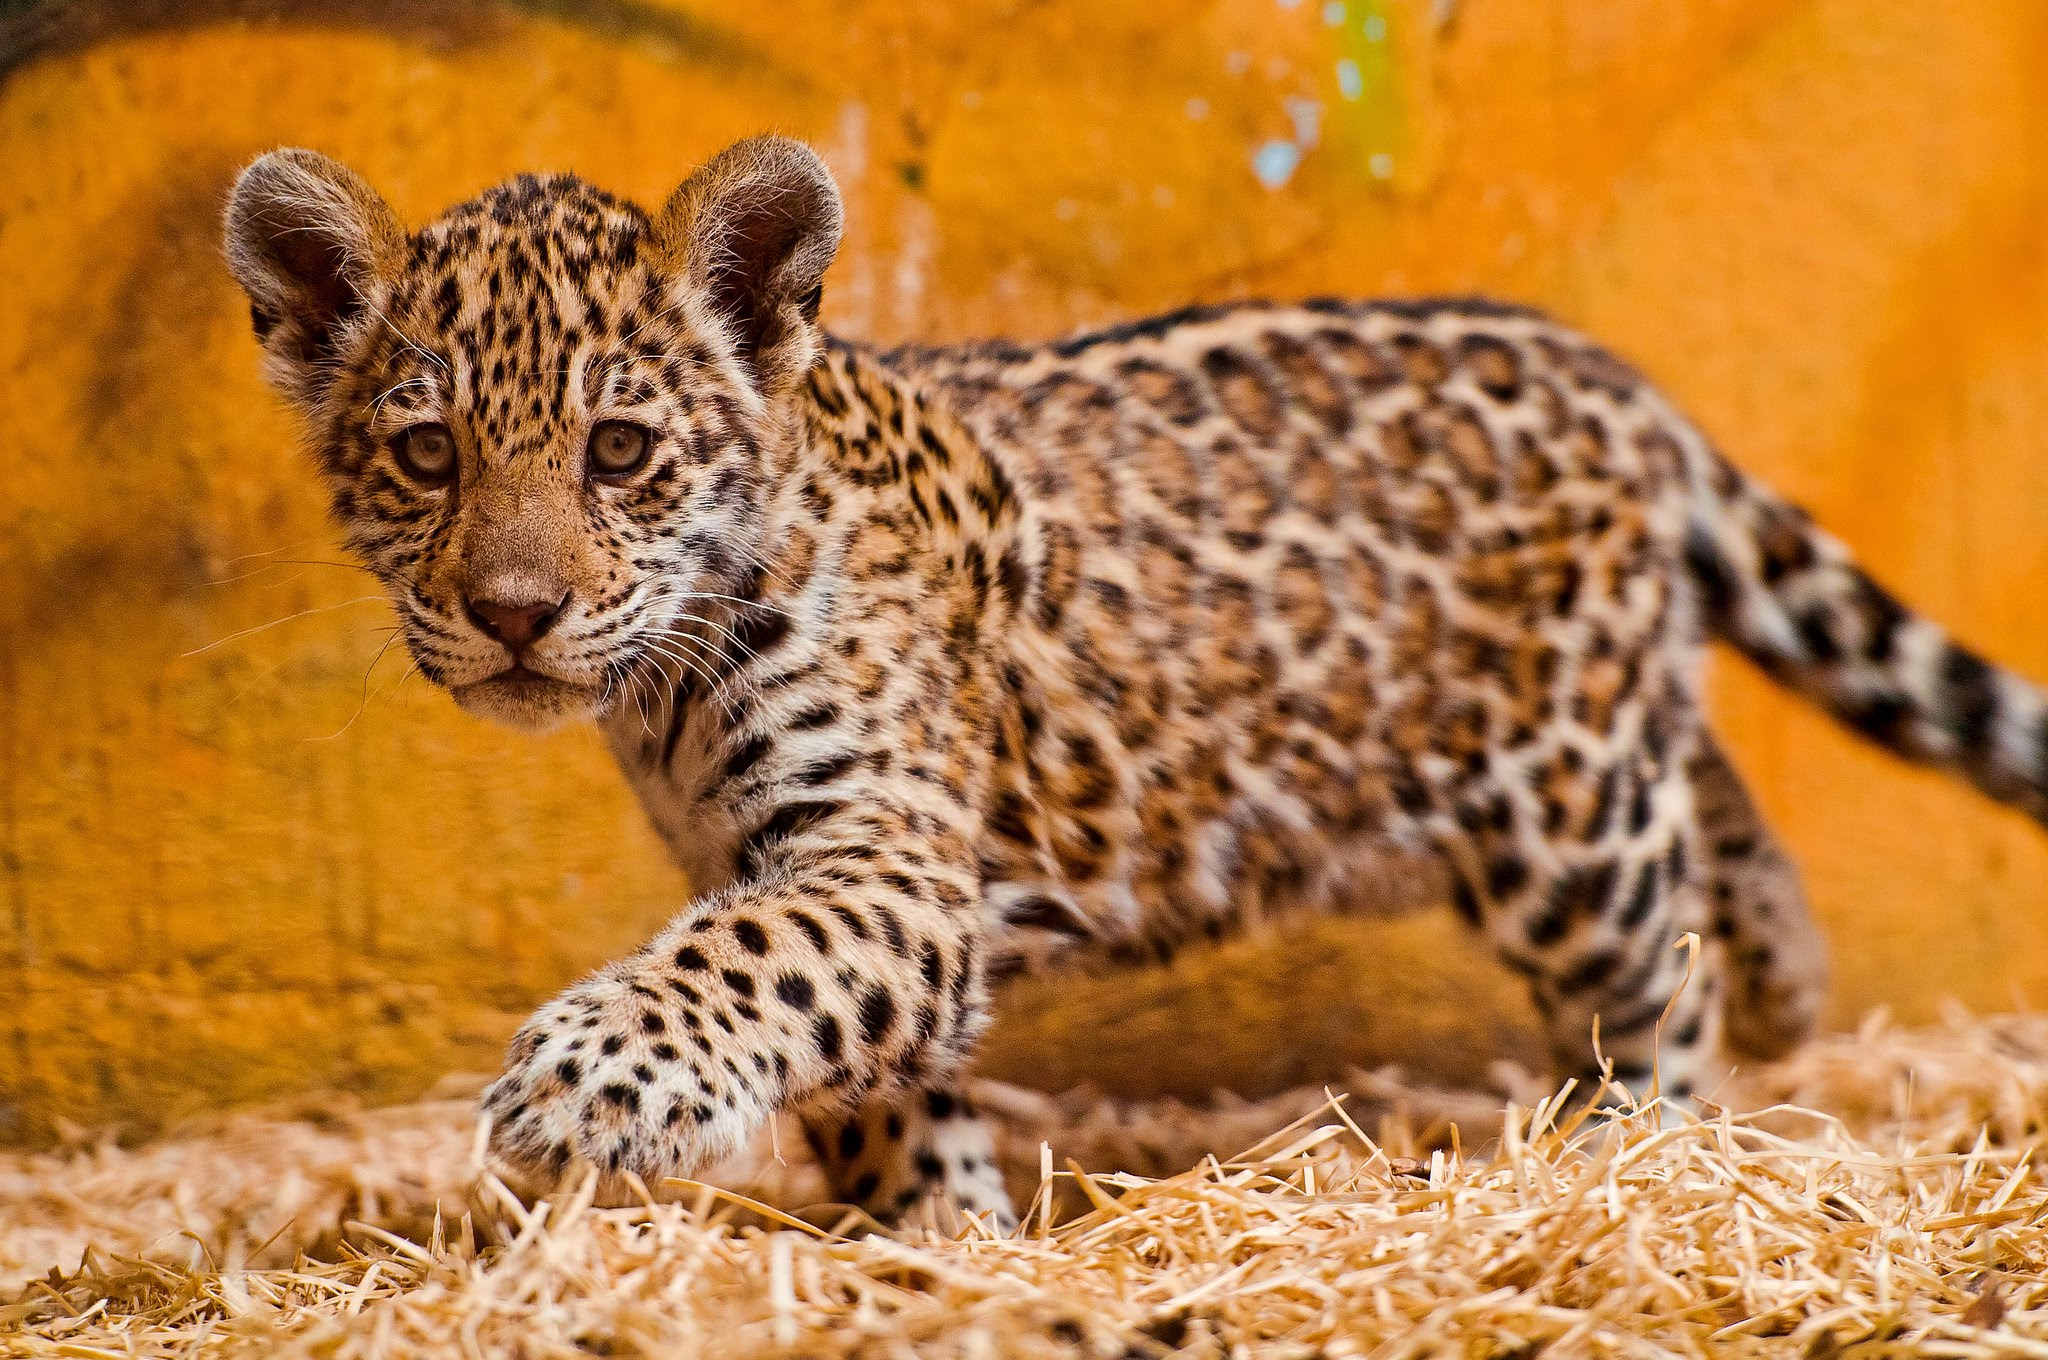 If You Want To Know More About How To Help Jaguars And Interesting Facts  About Jaguars Then Come And Look At My Website.